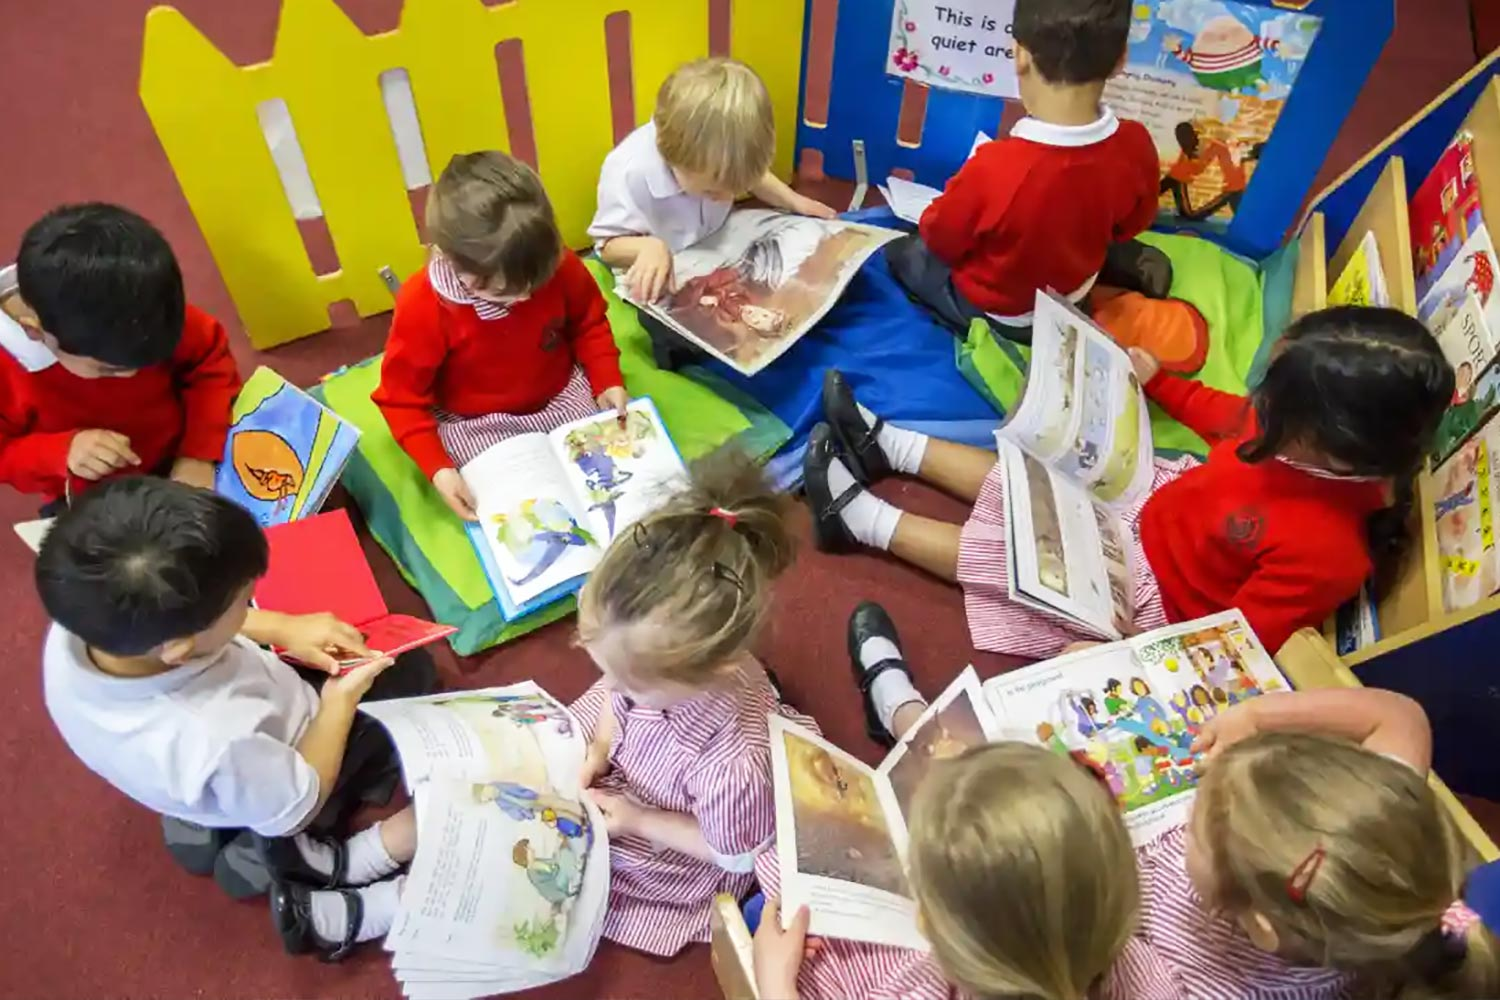 Children are taught how to read according to the strict methods prescribed by Michael Gove. If Hunt is right, it is a terrible indictment of his party's favoured methods. Photograph: Alamy.